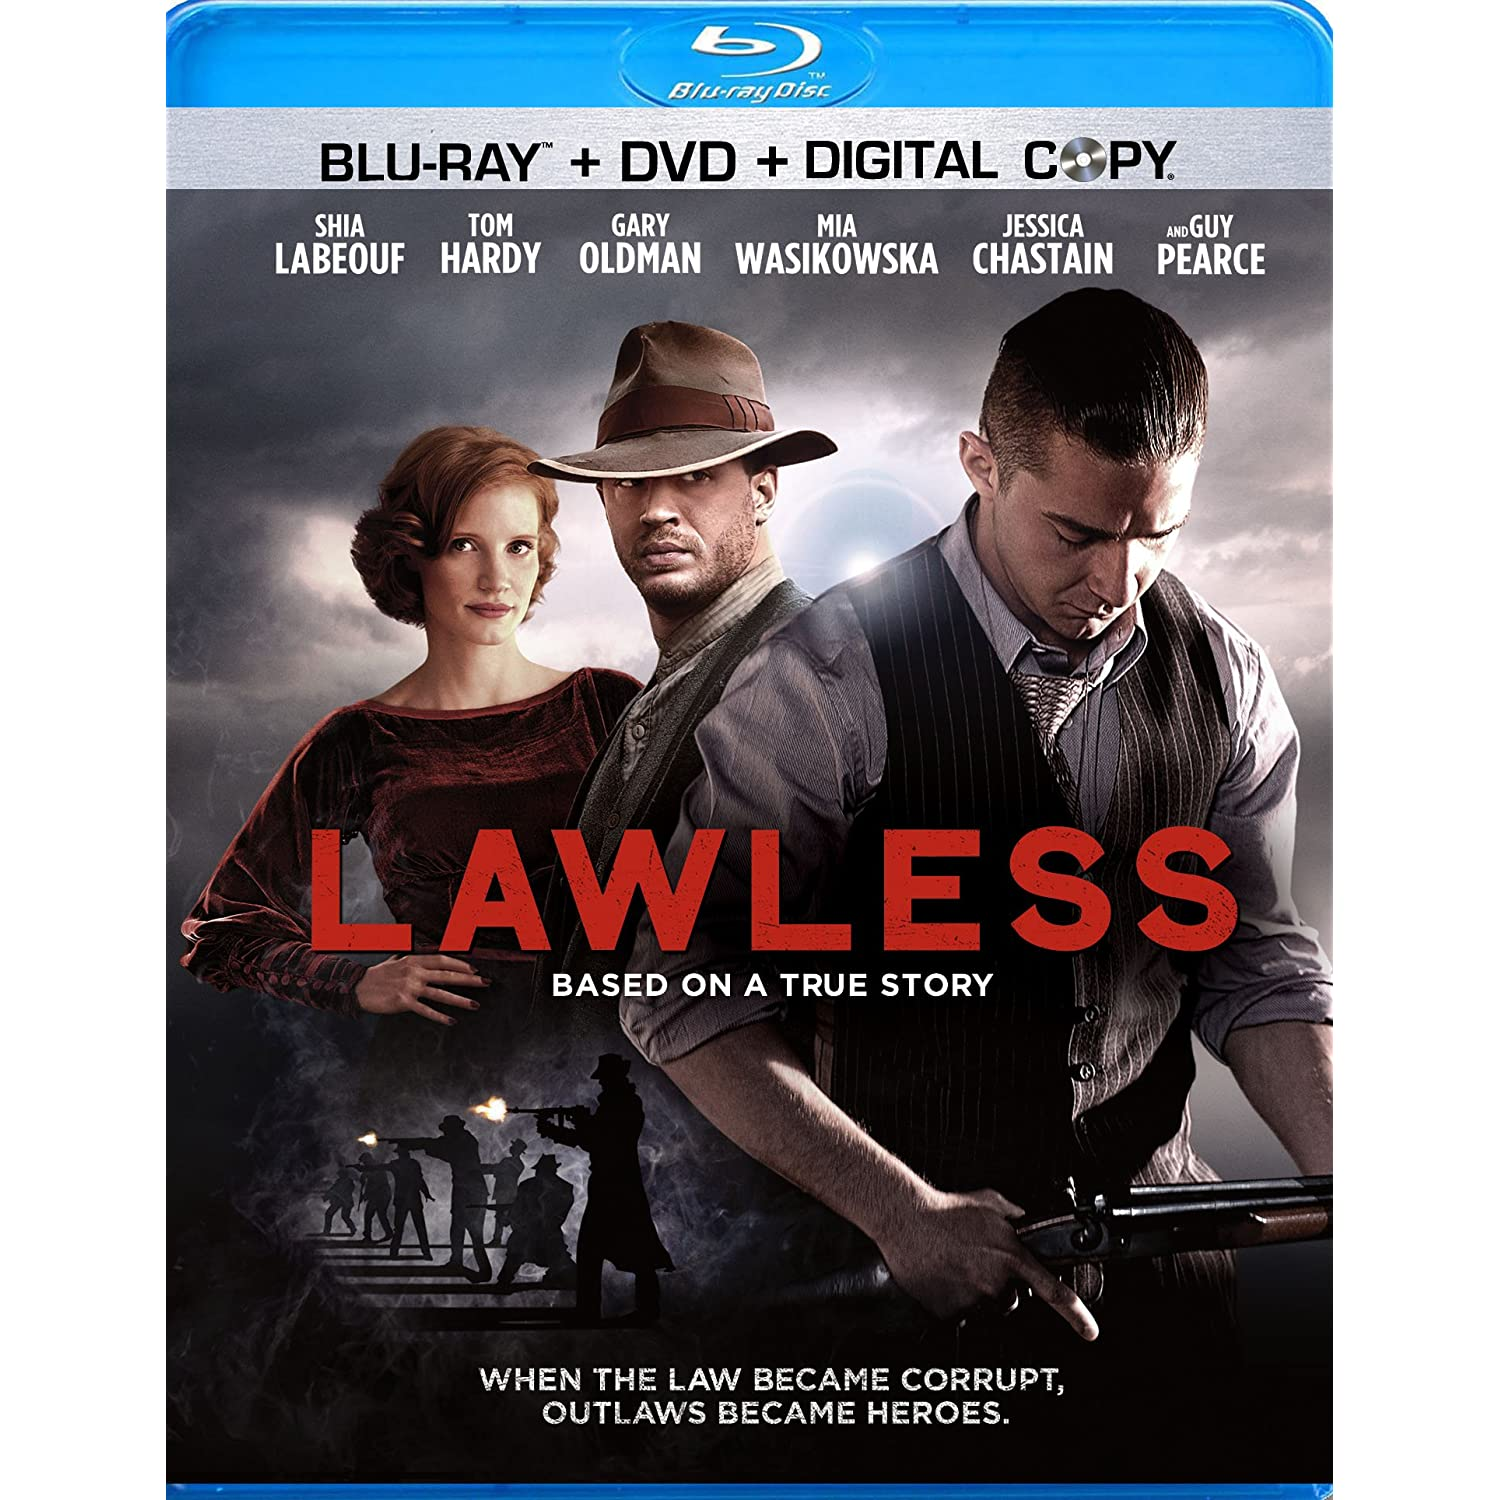 Lawless (2012) (Rated: R) - Set in Depression-era Franklin County, Virginia, a bootlegging gang is threatened by a new deputy and other authorities who want a cut of their profits.